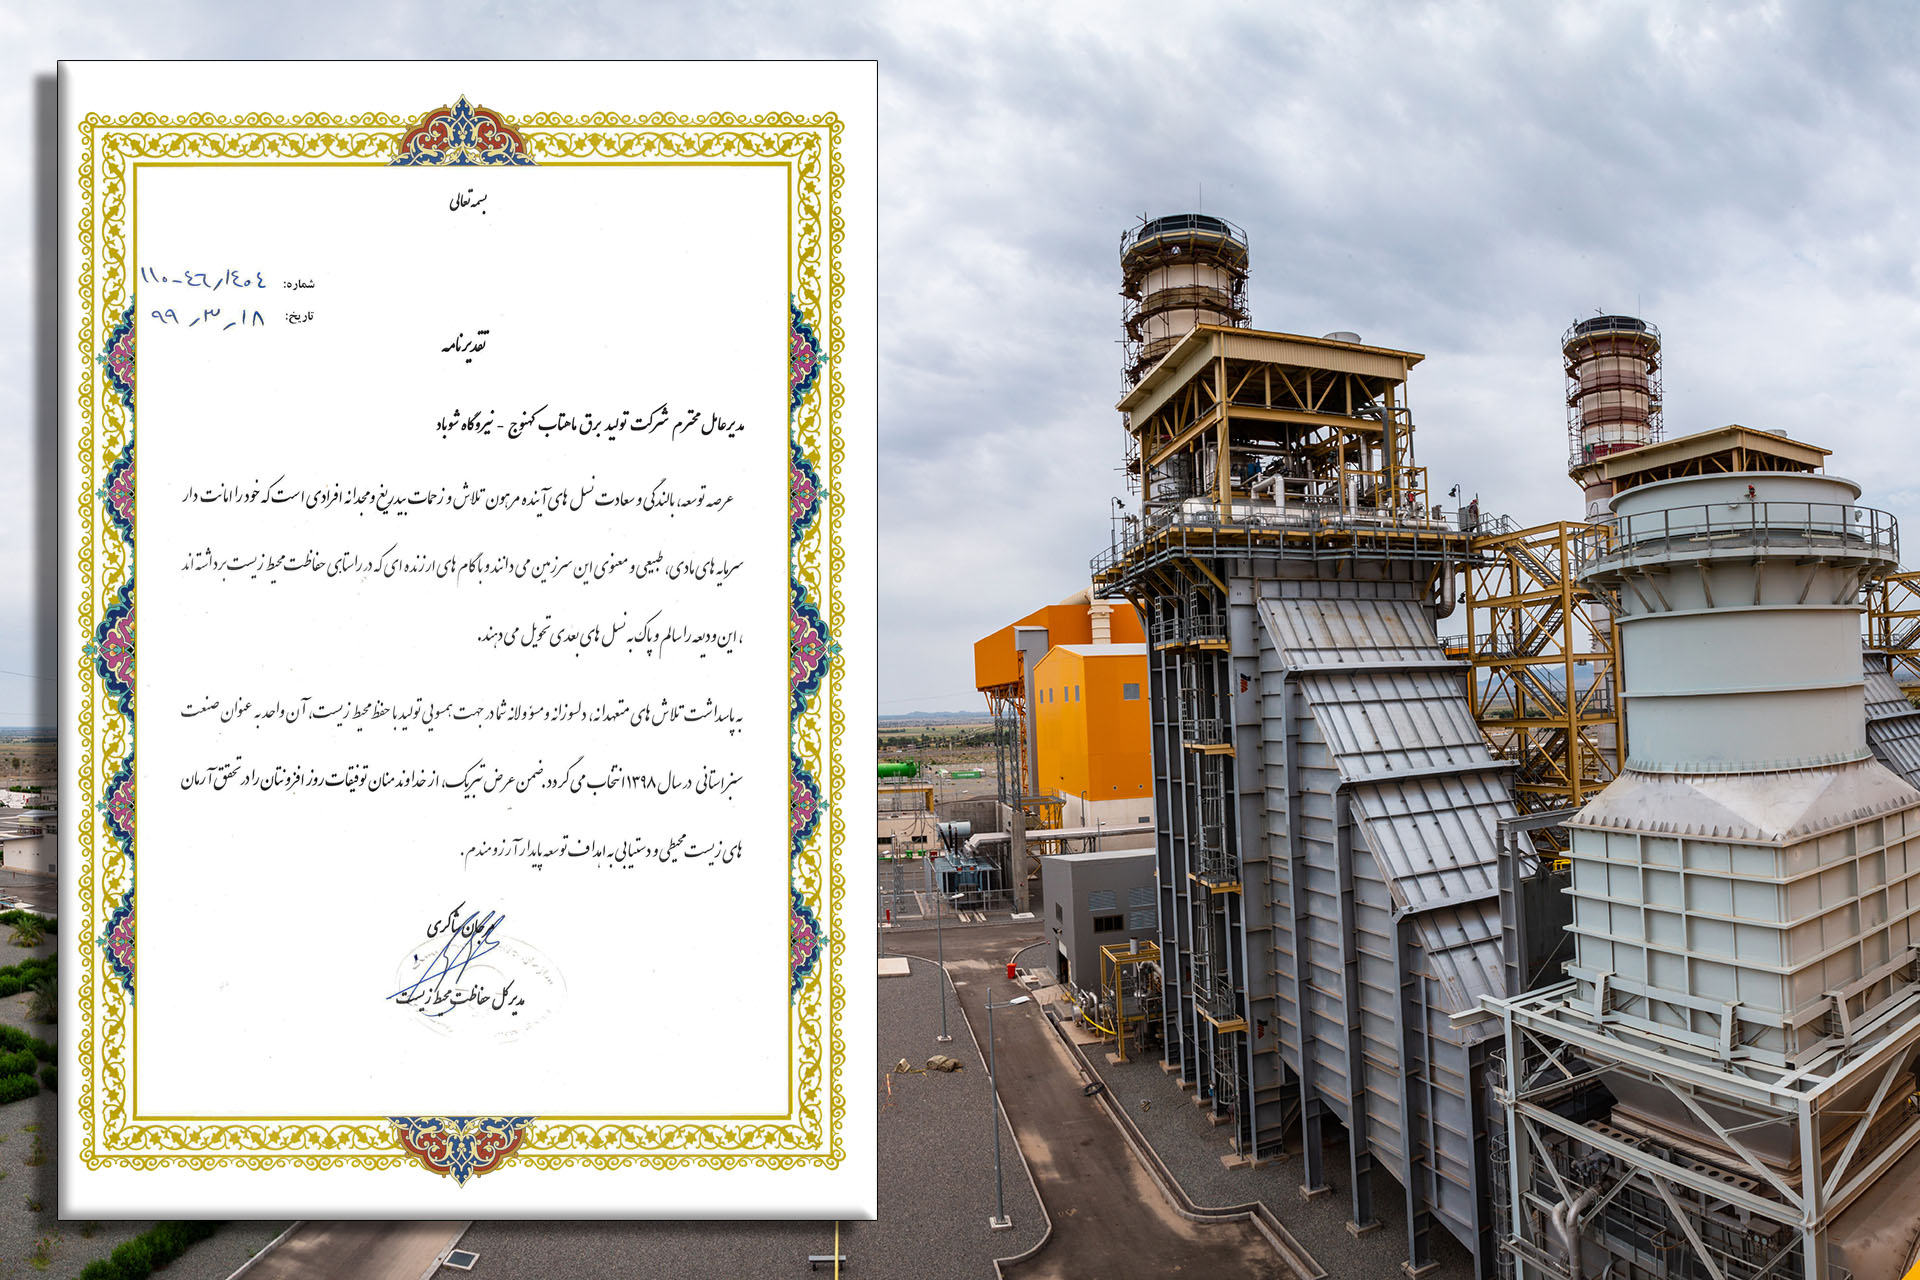 Shobad Combined Cycle Power Plant was introduced as the green industry of Kerman province